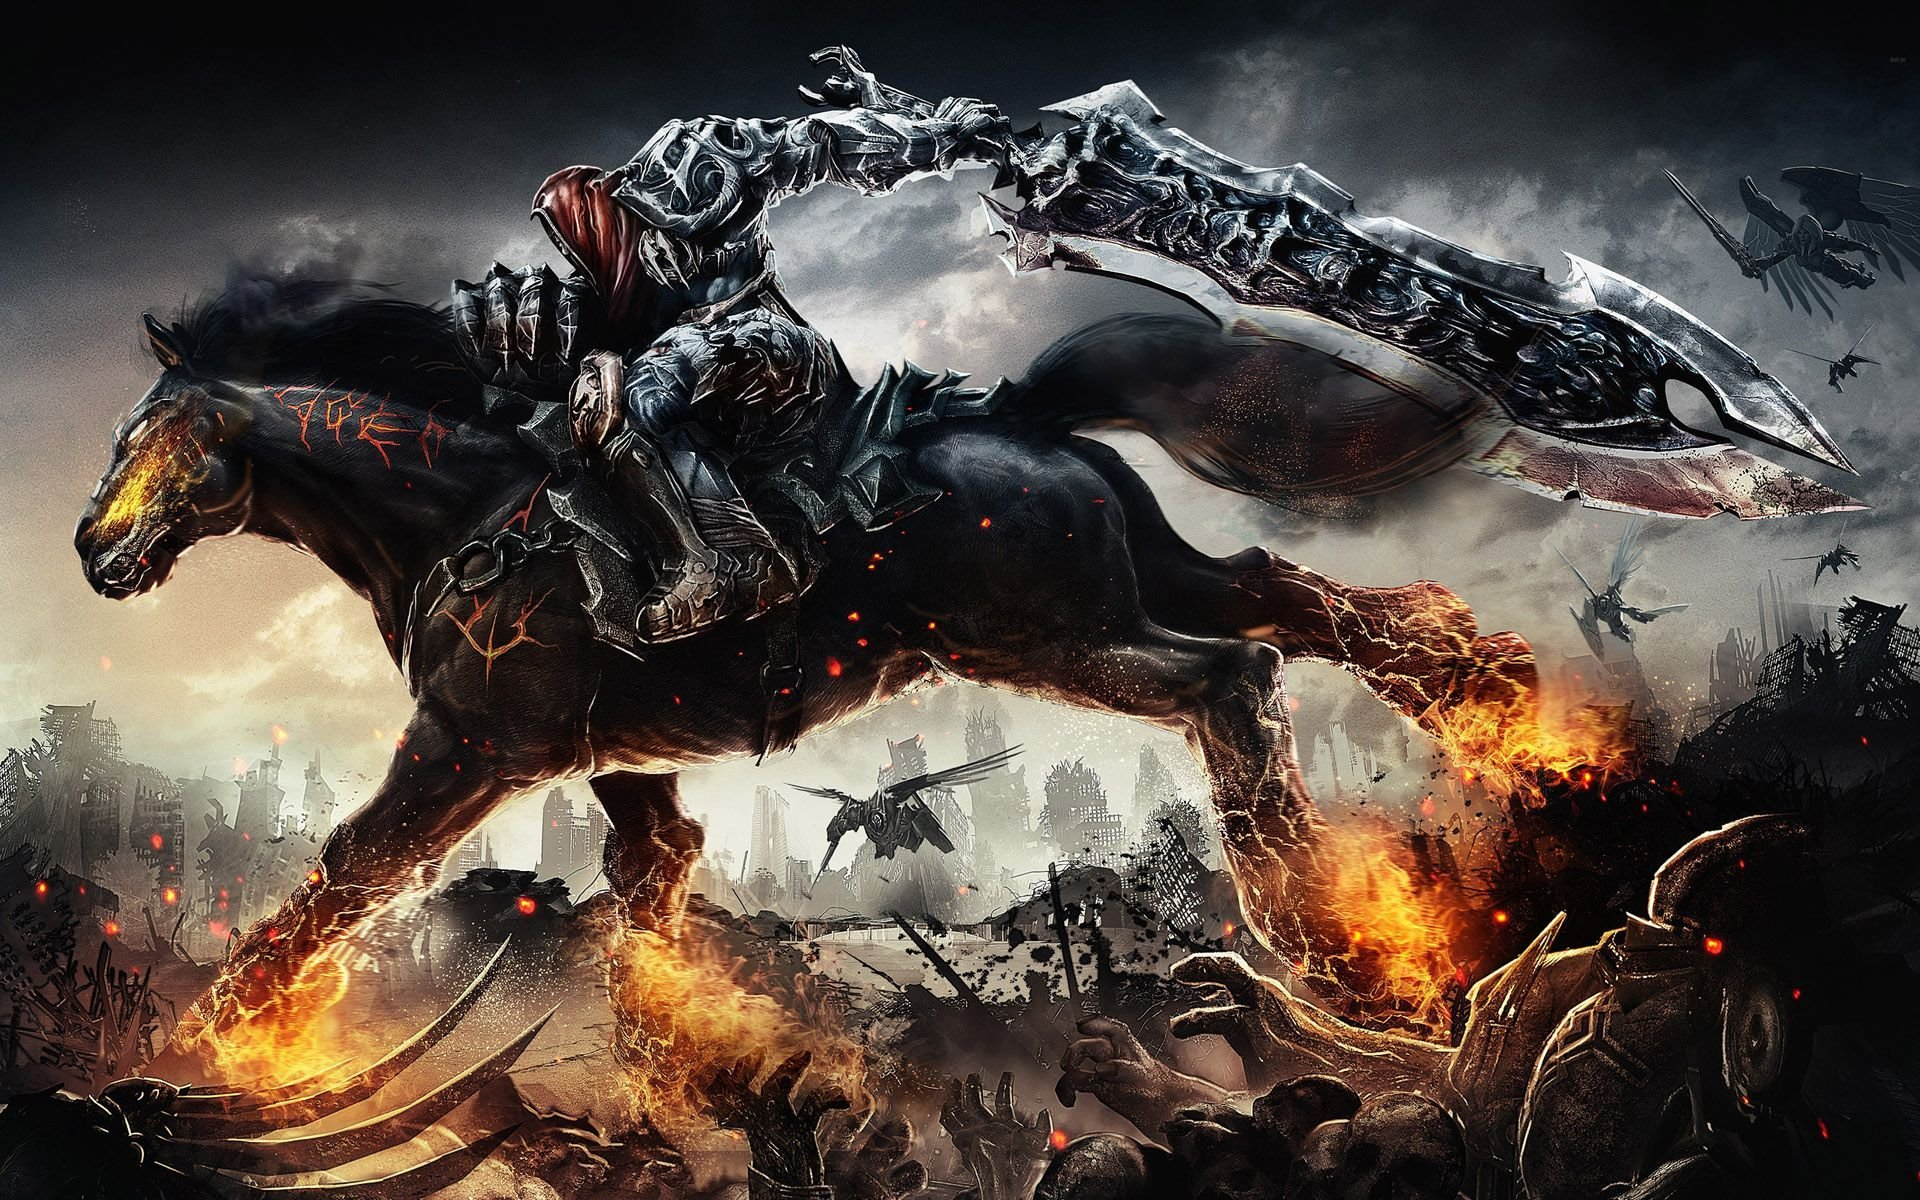 Darksiders Wallpapers Best HD Desktop Wallpapers Widescreen 1920x1200